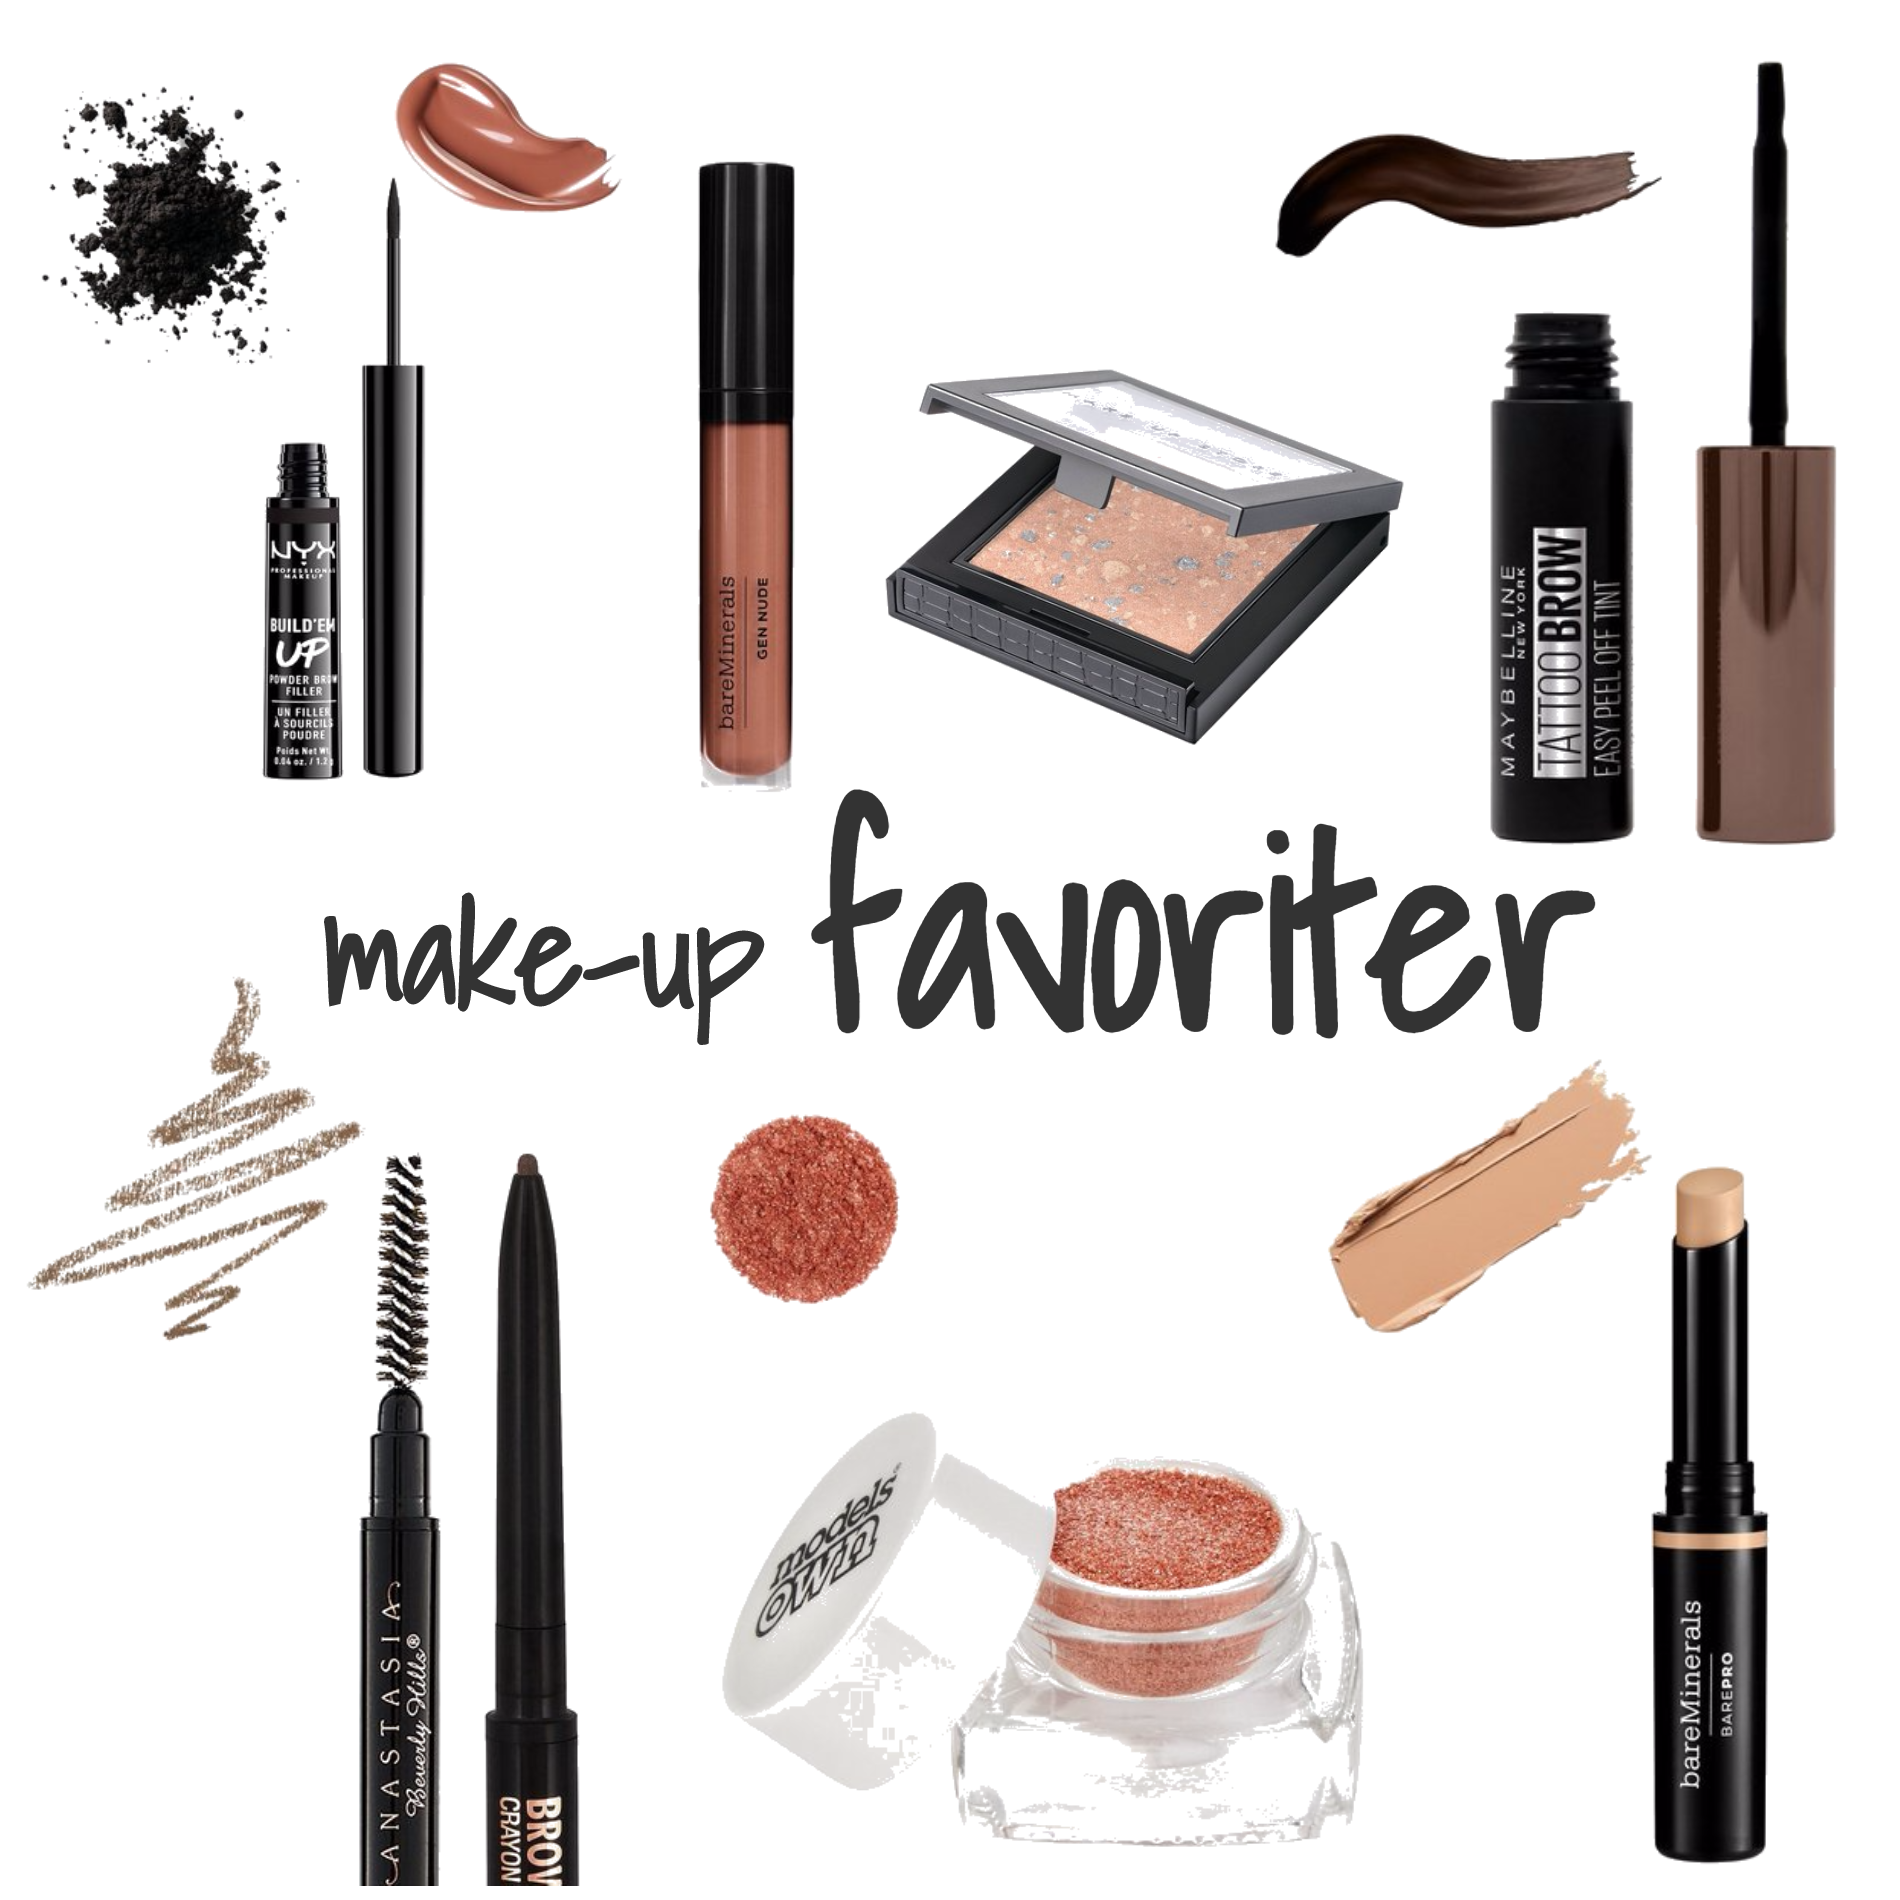 [make up] favoriter